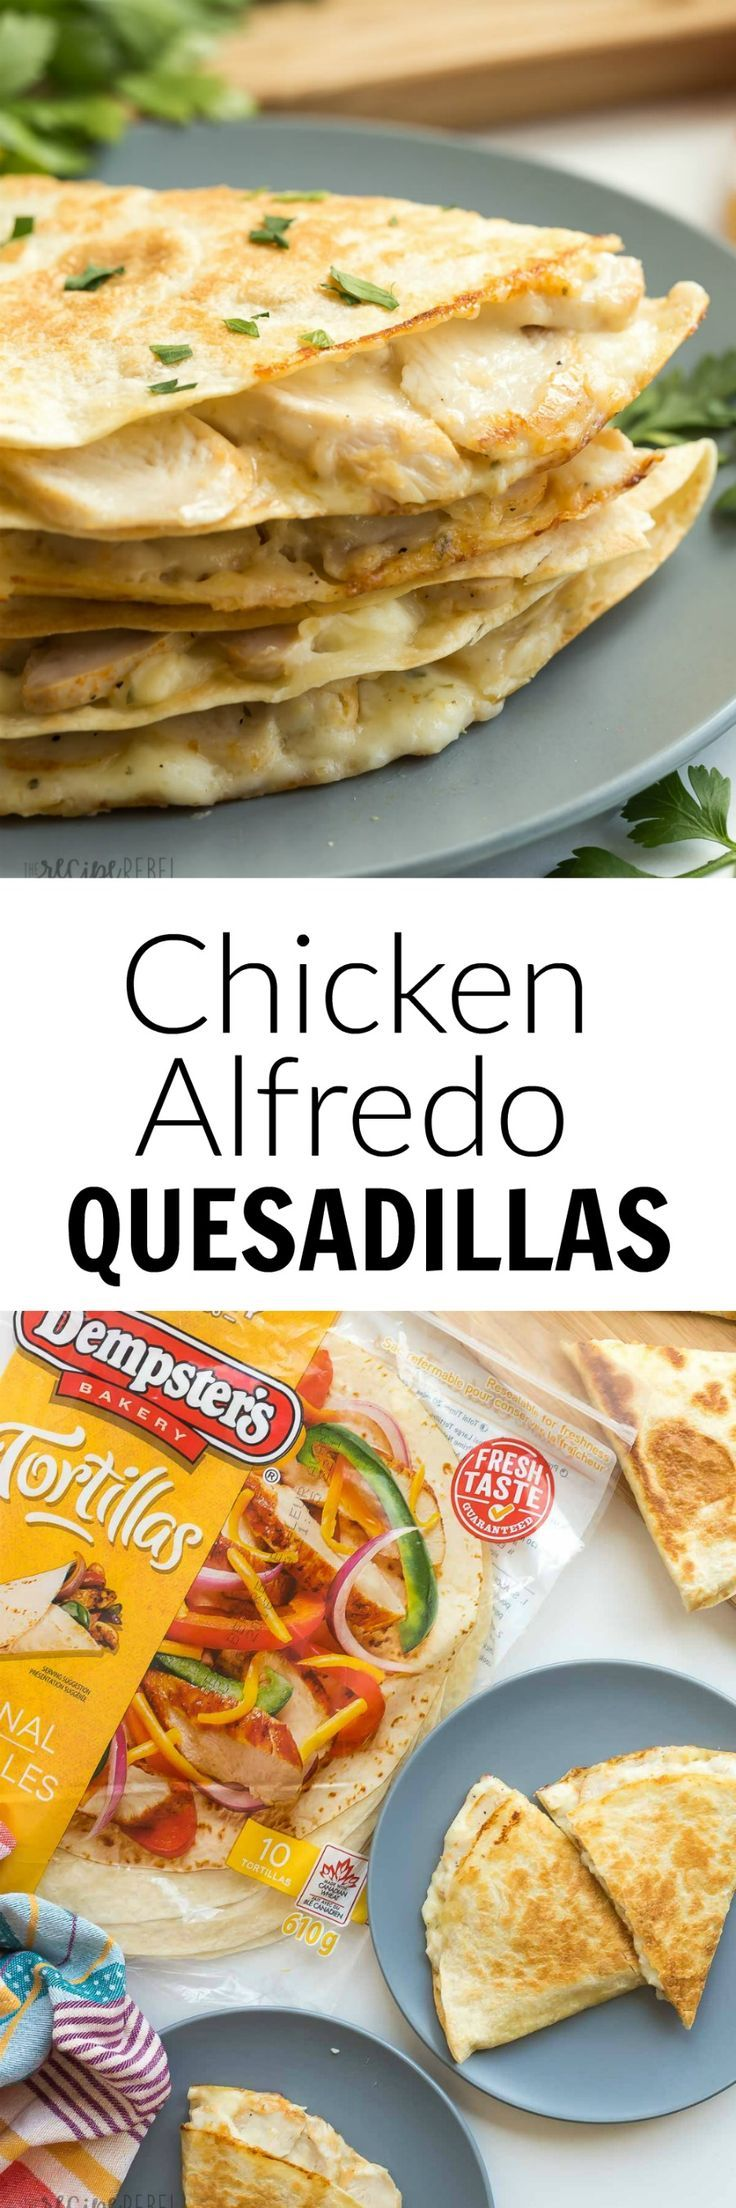 These Chicken Alfredo Quesadillas are an easy lunch, dinner or snack! They're filled with leftover chicken, Alfredo sauce and cheese — easy comfort food! A 10 minute meal.